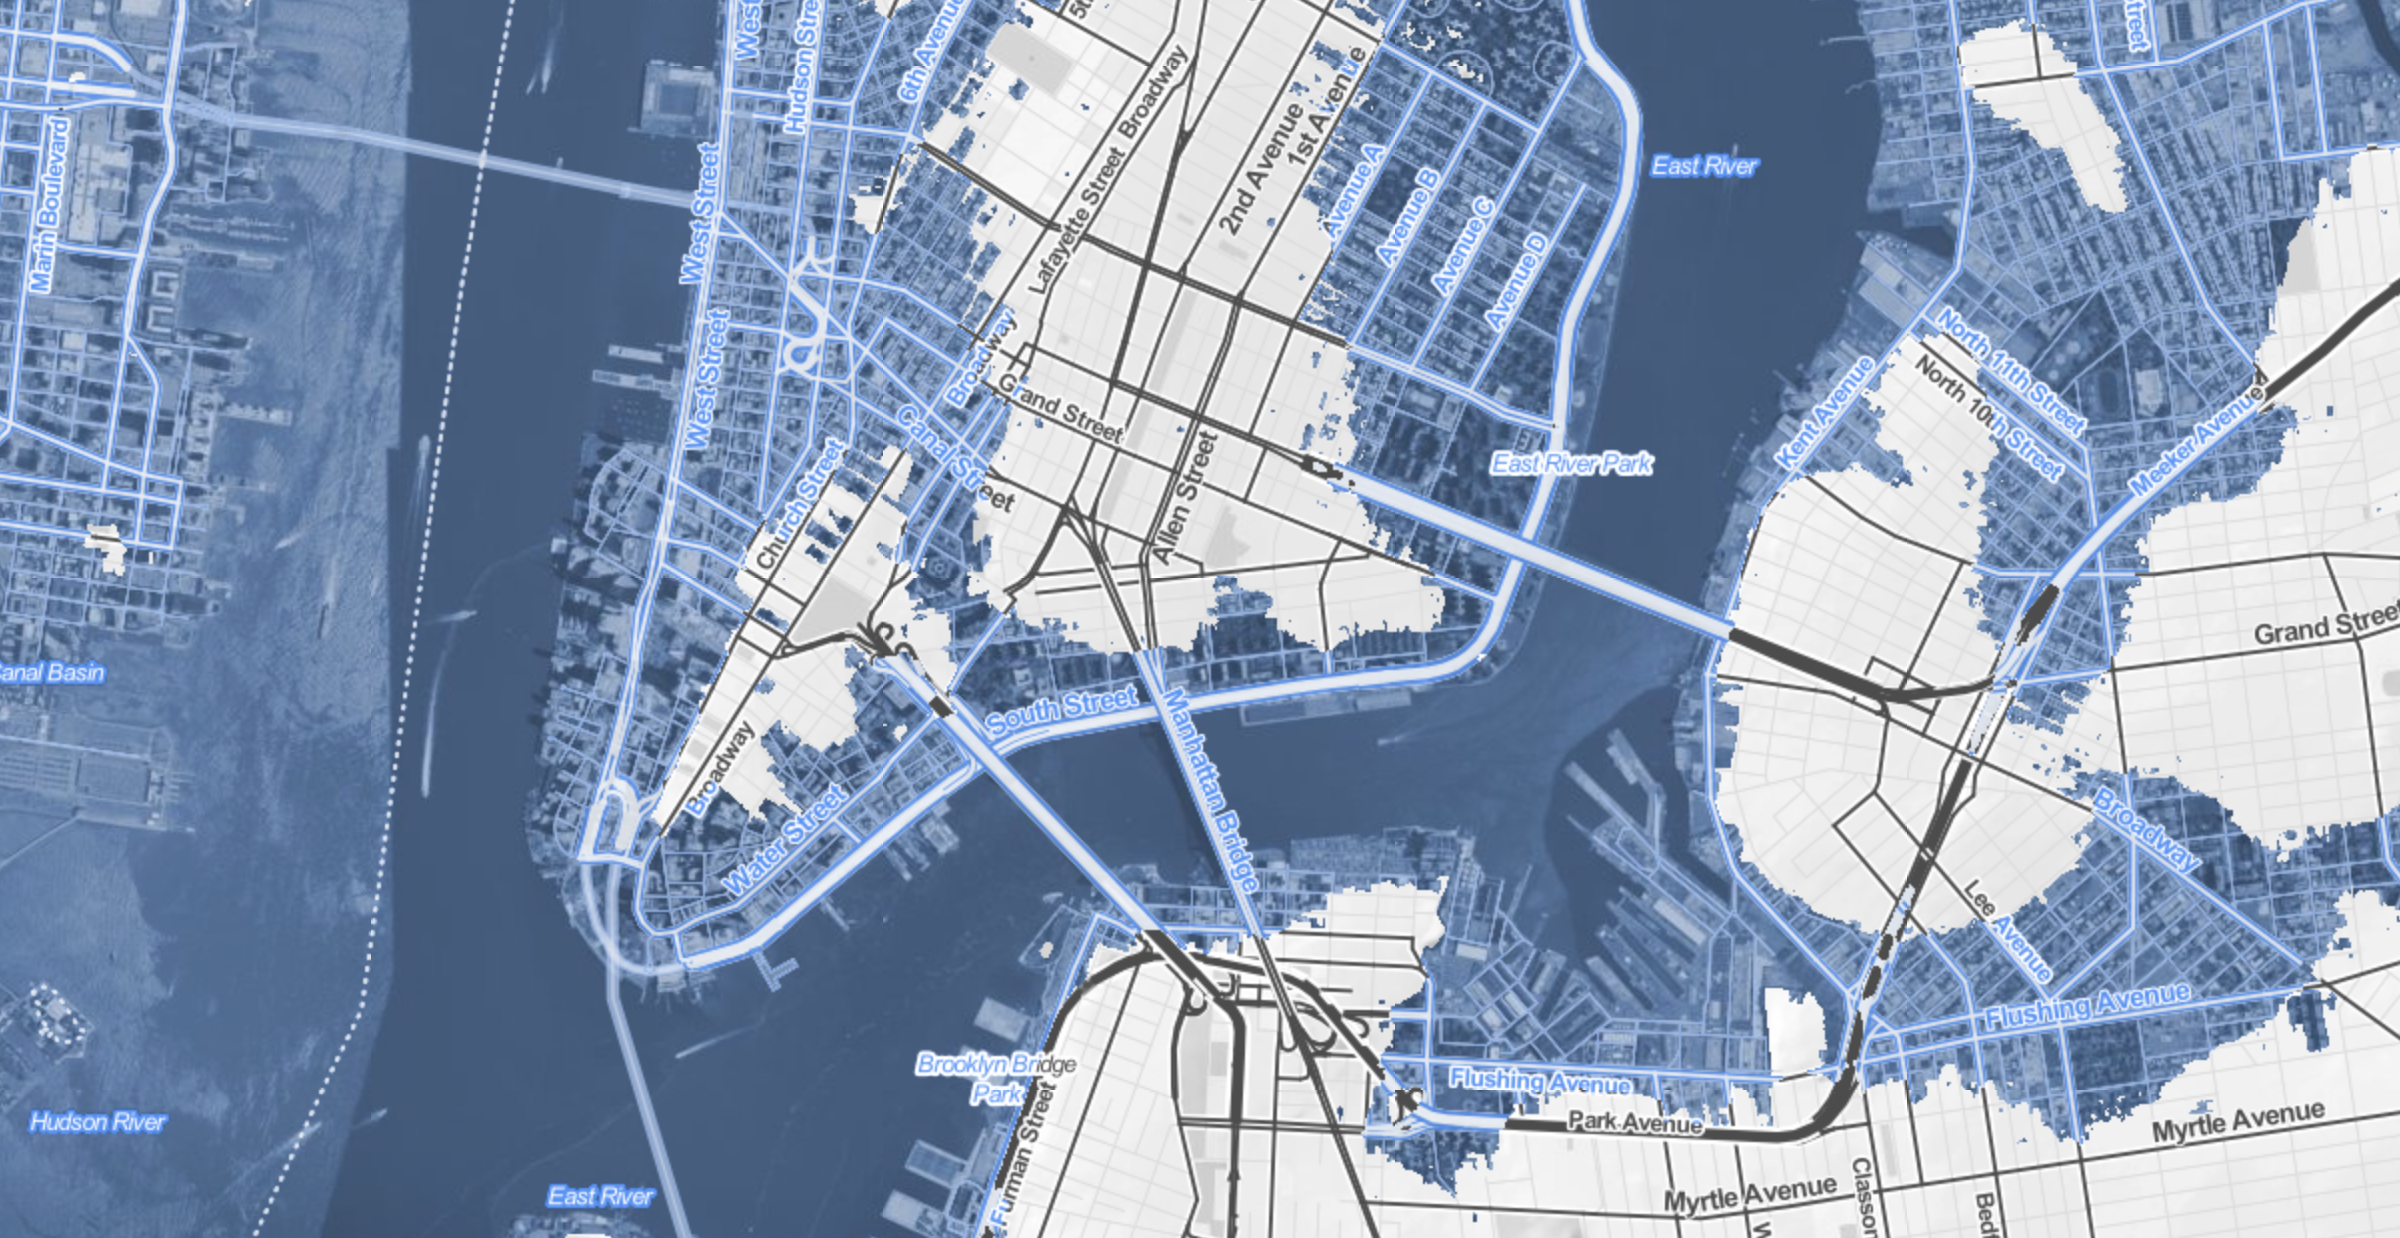 Lower Manhattan Island?